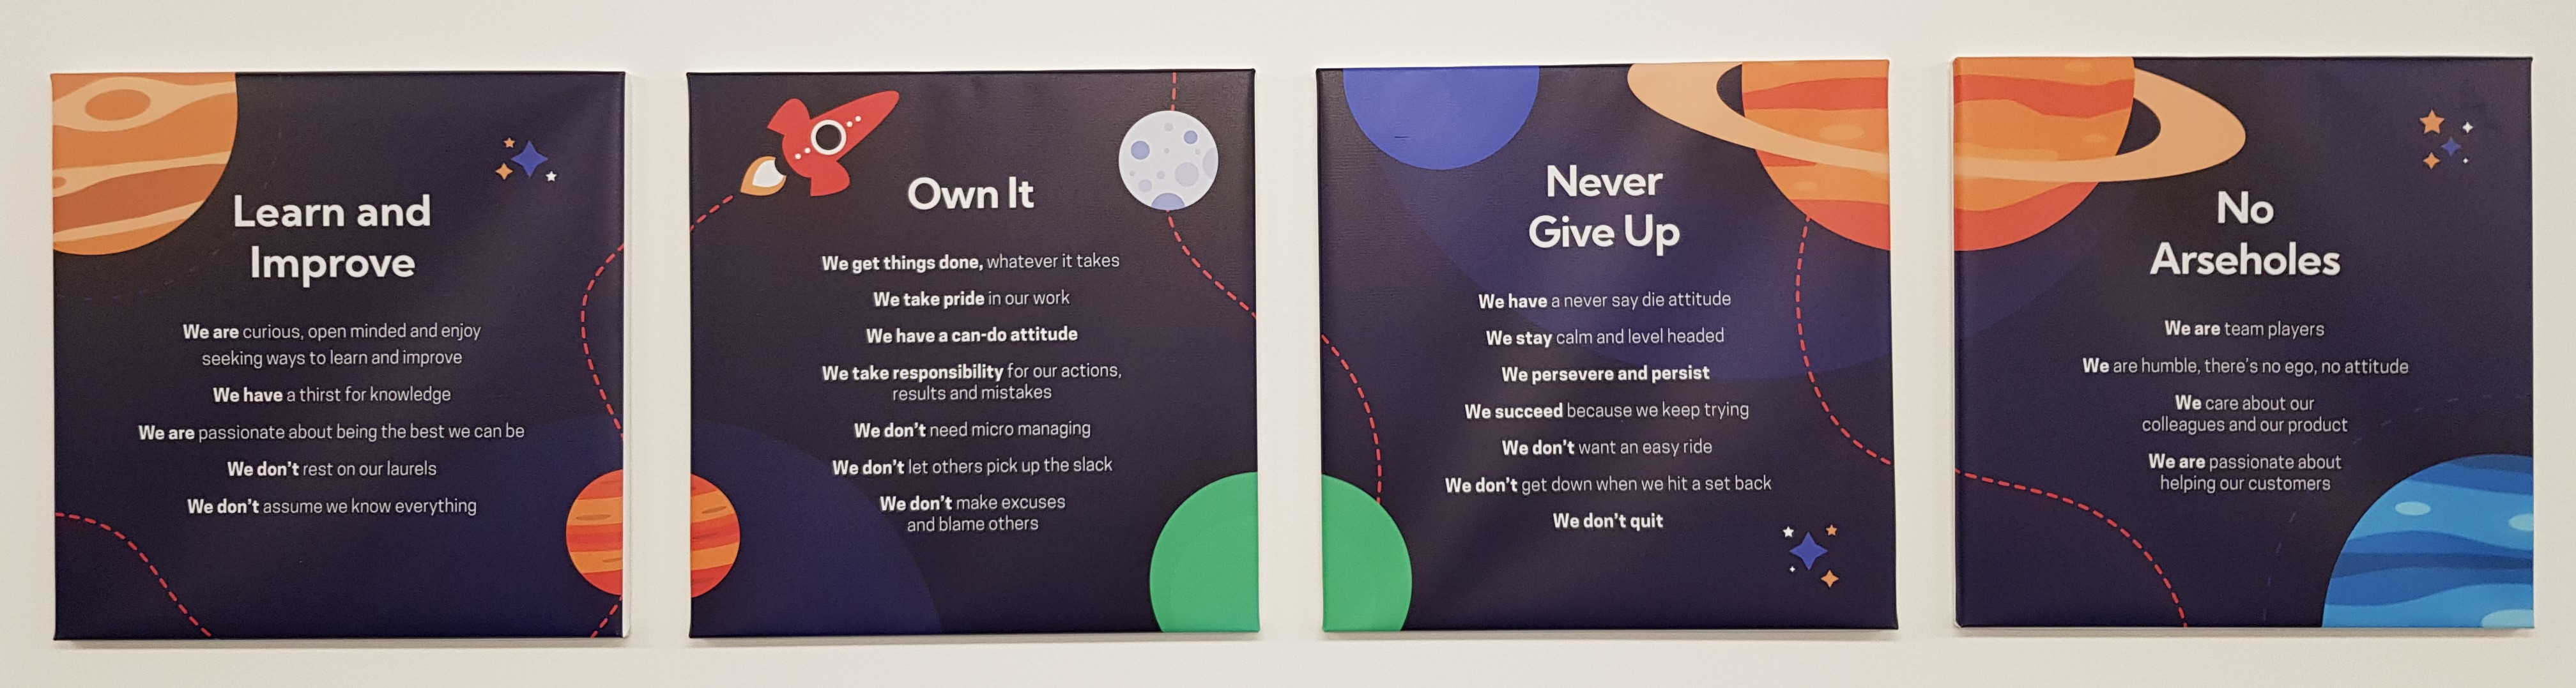 accessplanit company values on the wall